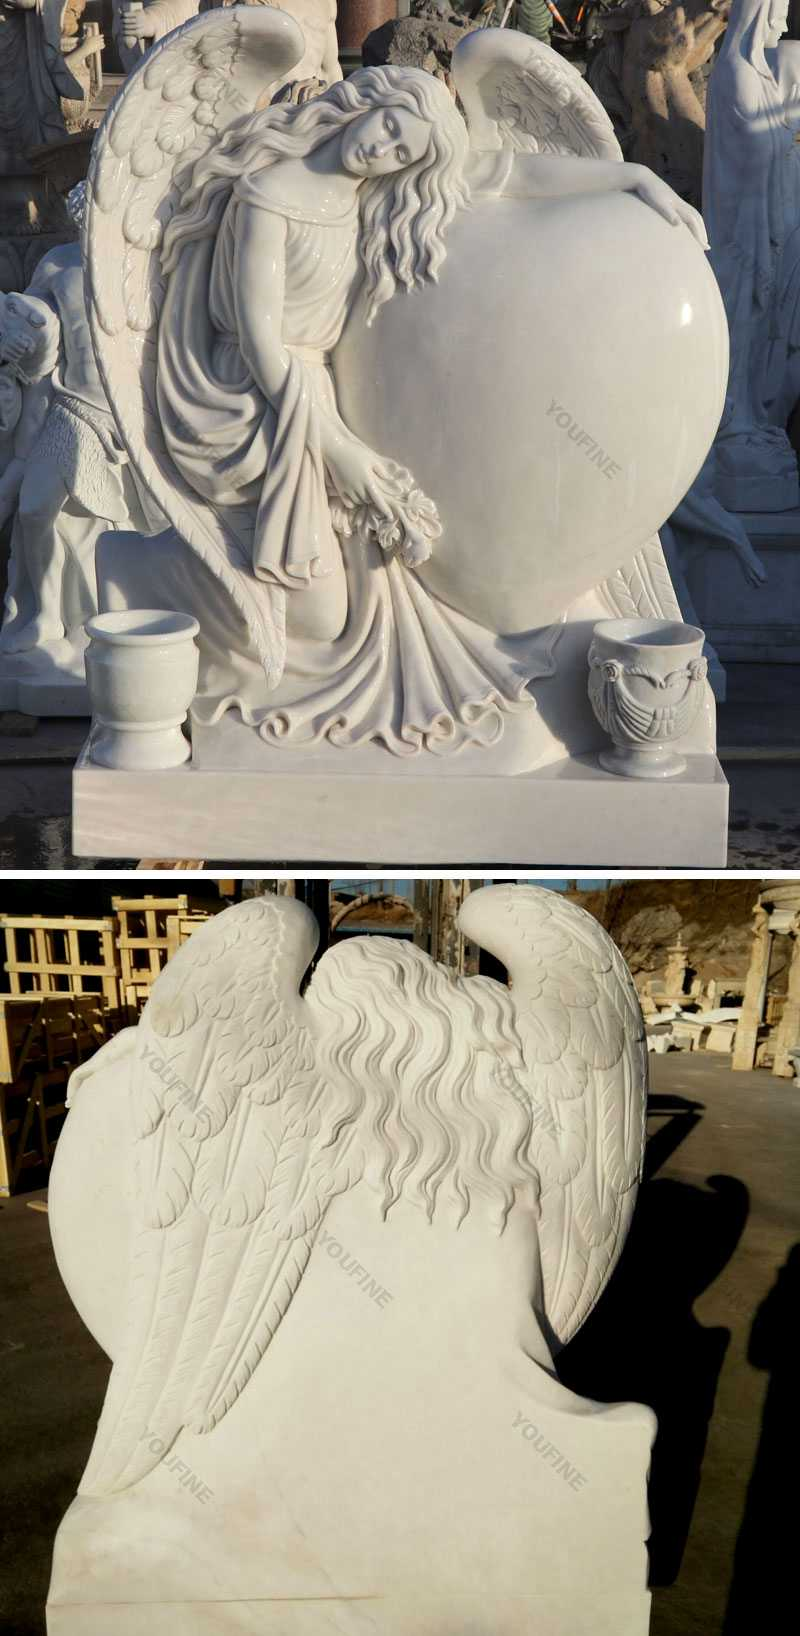 https://www.artsculpturegallery.com/products/marble-sculpture/marble-headstone/